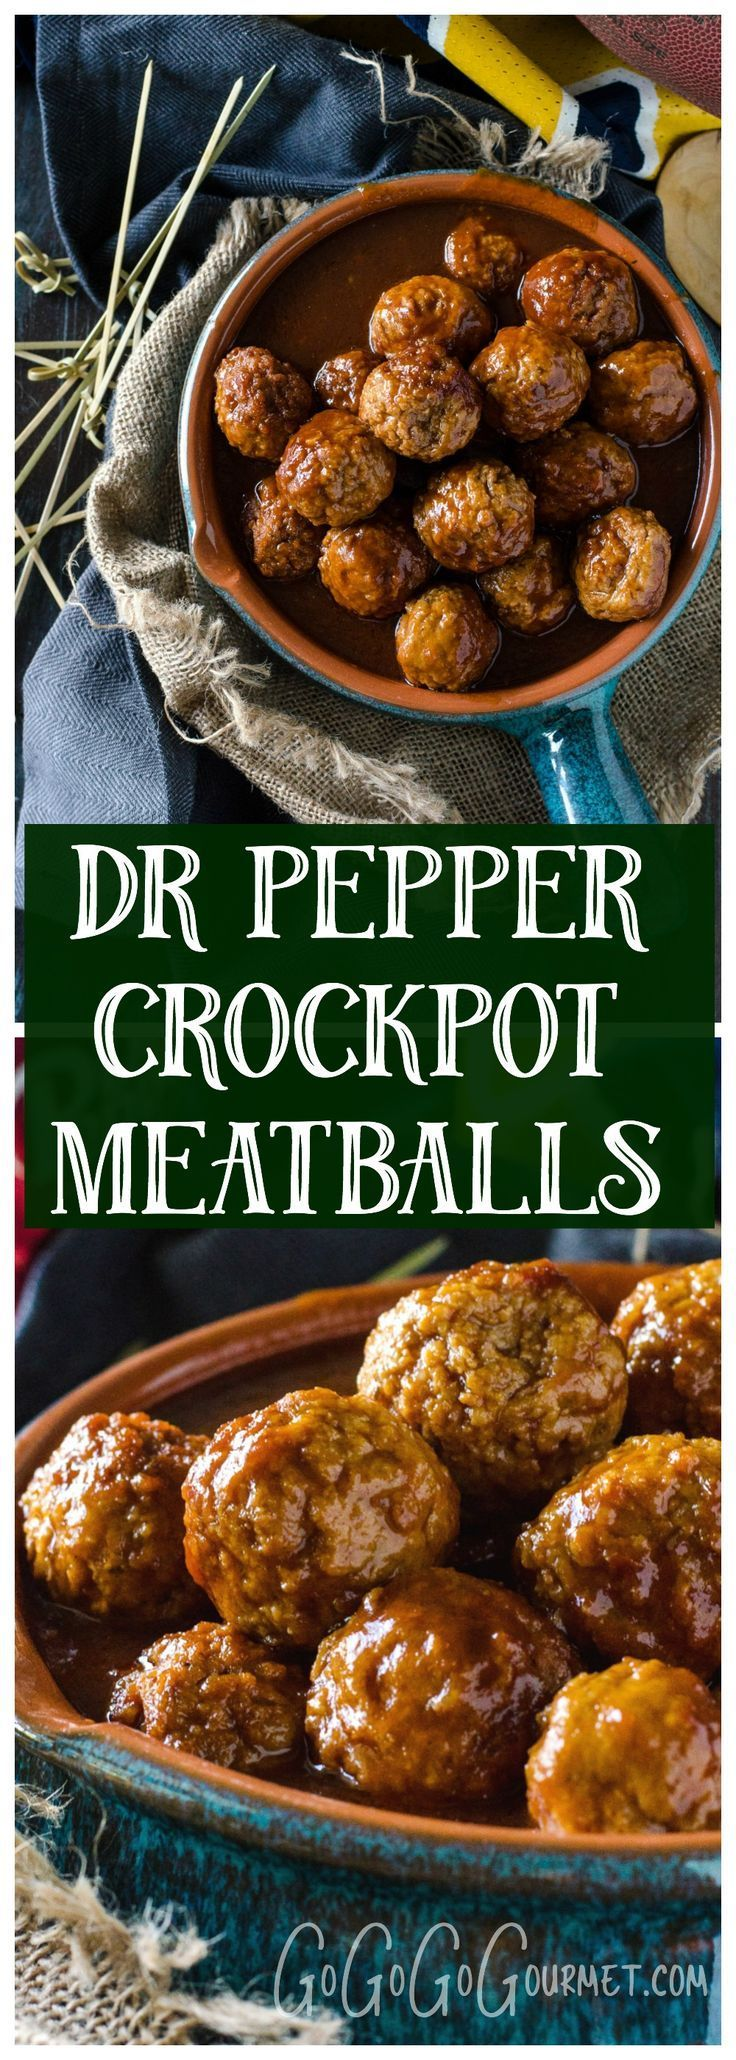 Dr Pepper Crockpot Meatballs are a great tailgating option- love that sweet and tangy sauce! @Go Go Go Gourmet